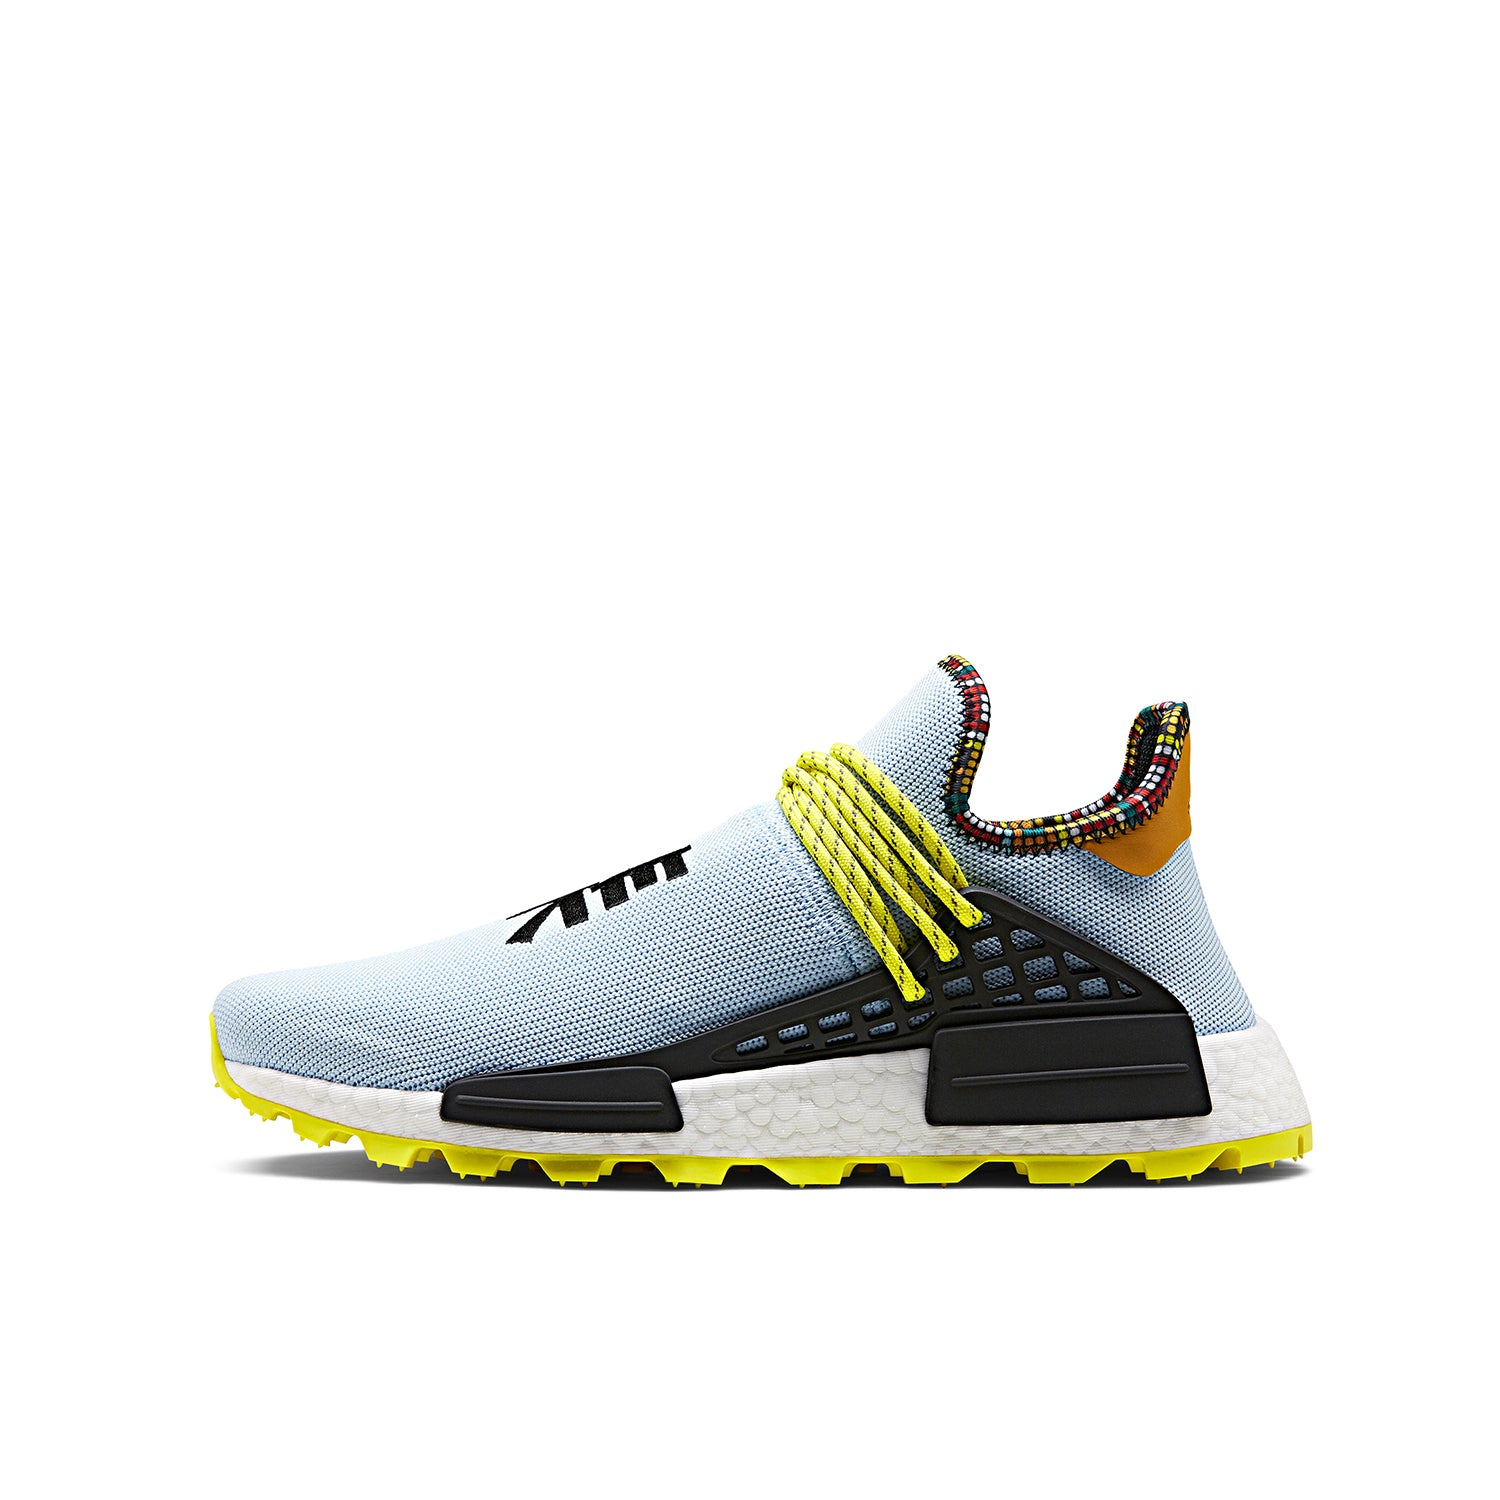 new style 8958f 9759c adidas Originals x Pharrell Williams 'INSPIRATION' Solar HU NMD Aero Blue